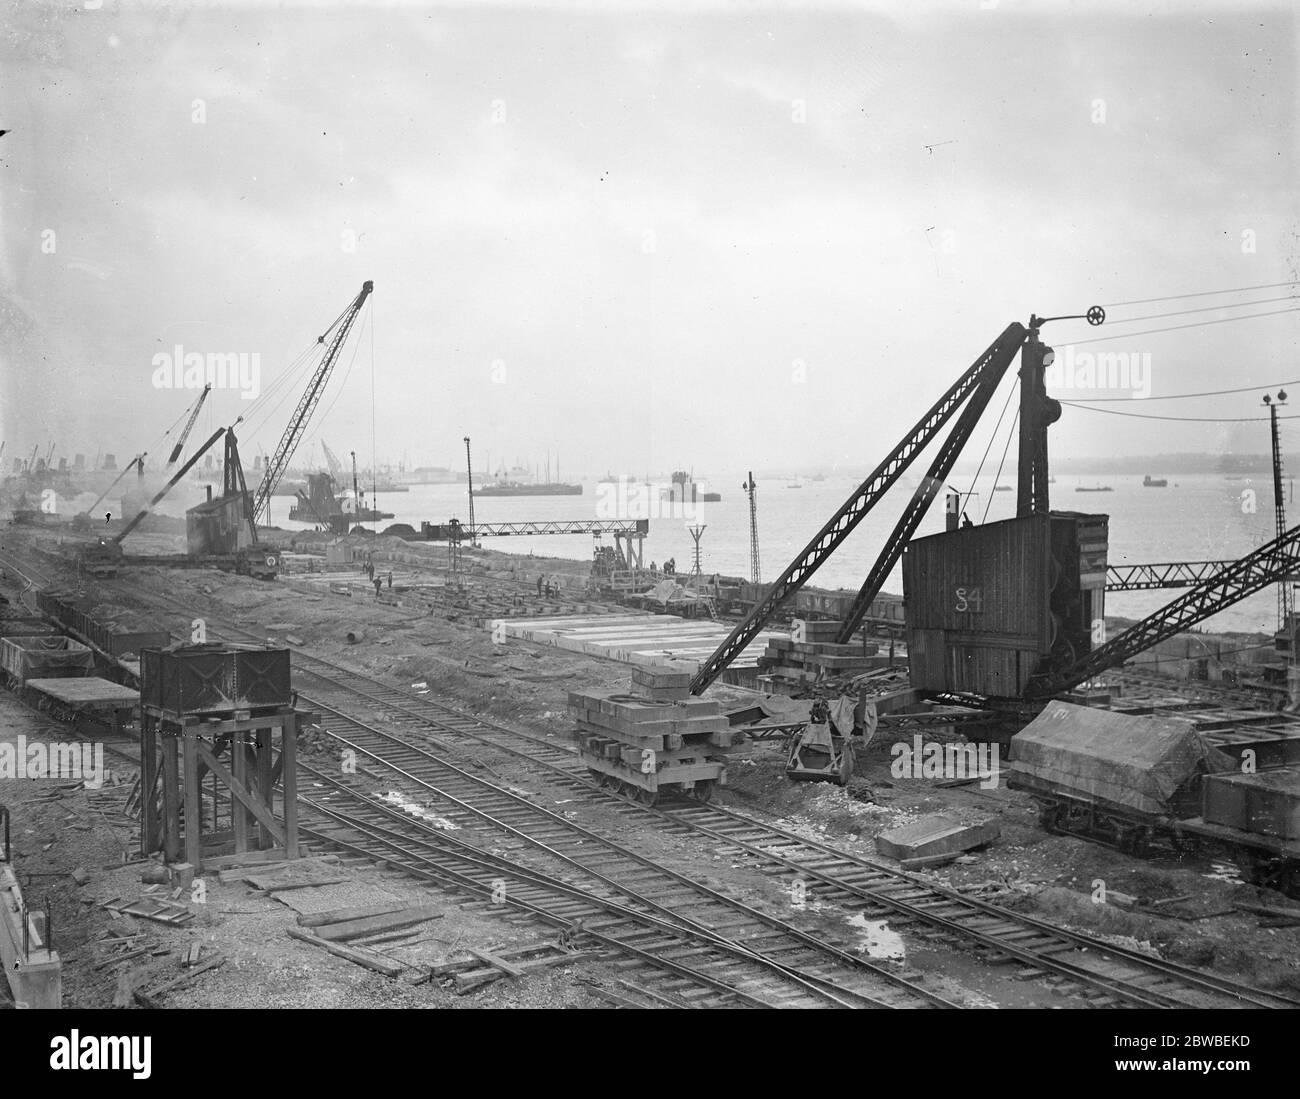 Panoramic view of work in progress on the new Southern Railway graving dock at Southampton which will be the largest in the world 6 October 1931 Stock Photo